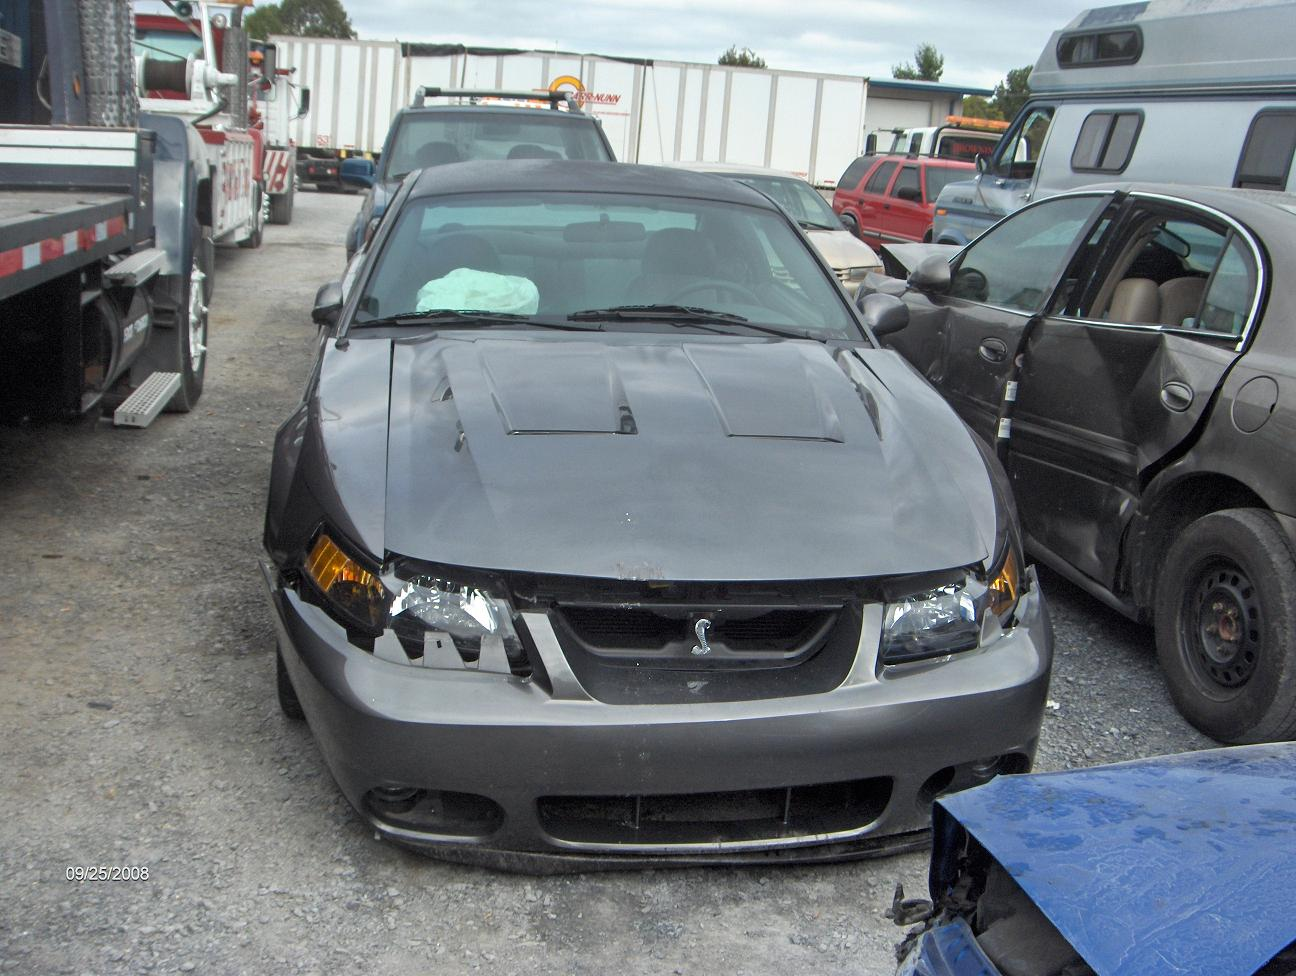 Wrecked 2003 Cobra for Sale Make offer | SVTPerformance.com